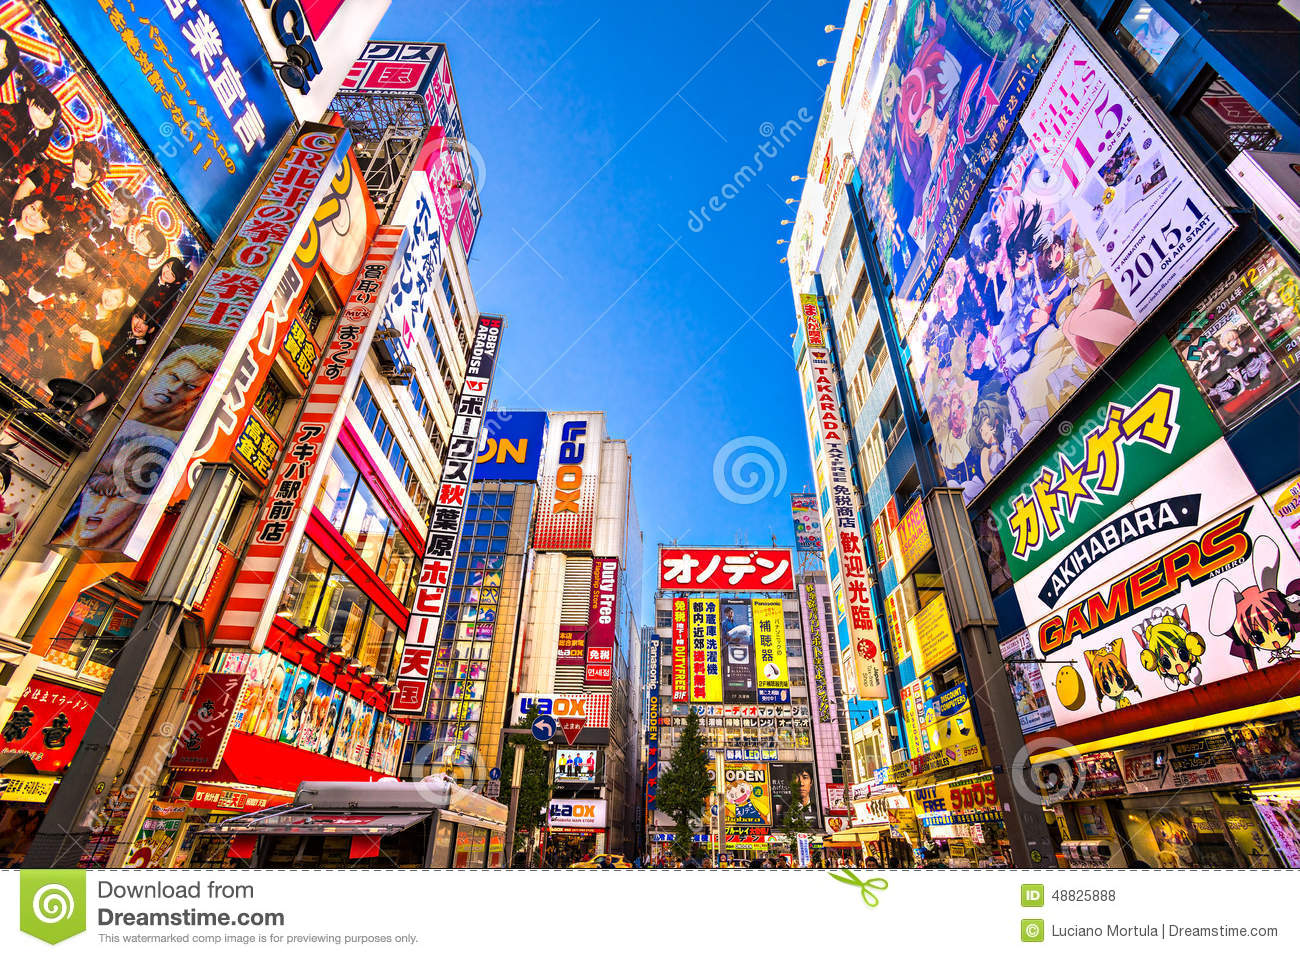 ... shopping area for electronic, computer, anime, games and otaku goods